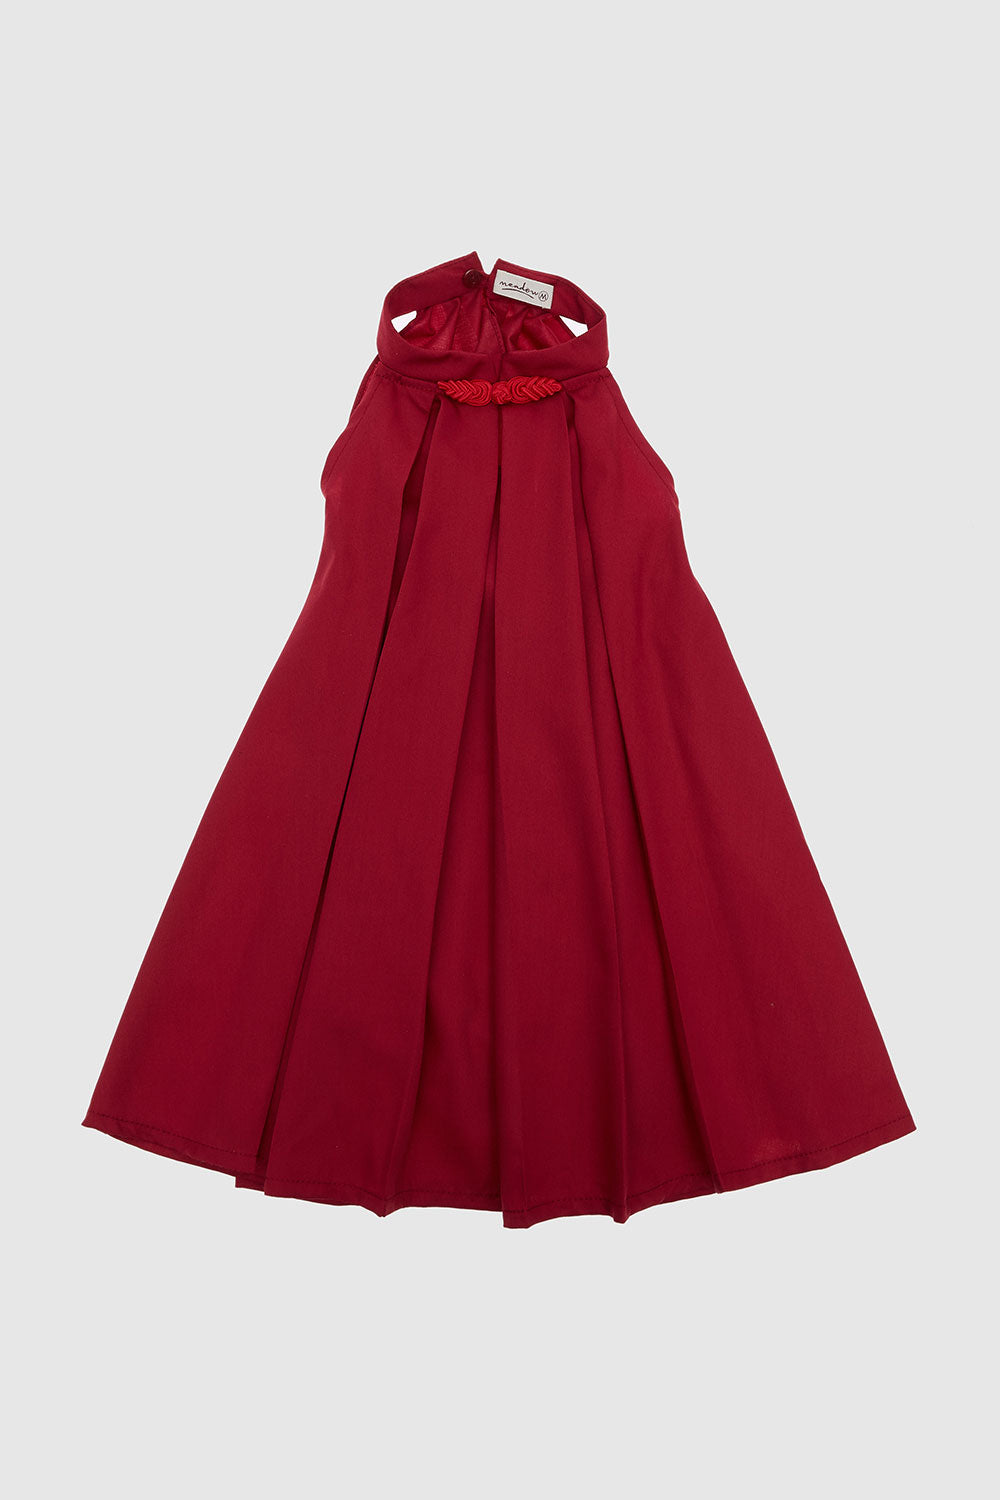 Meadow Baby Myra Dress in Maroon